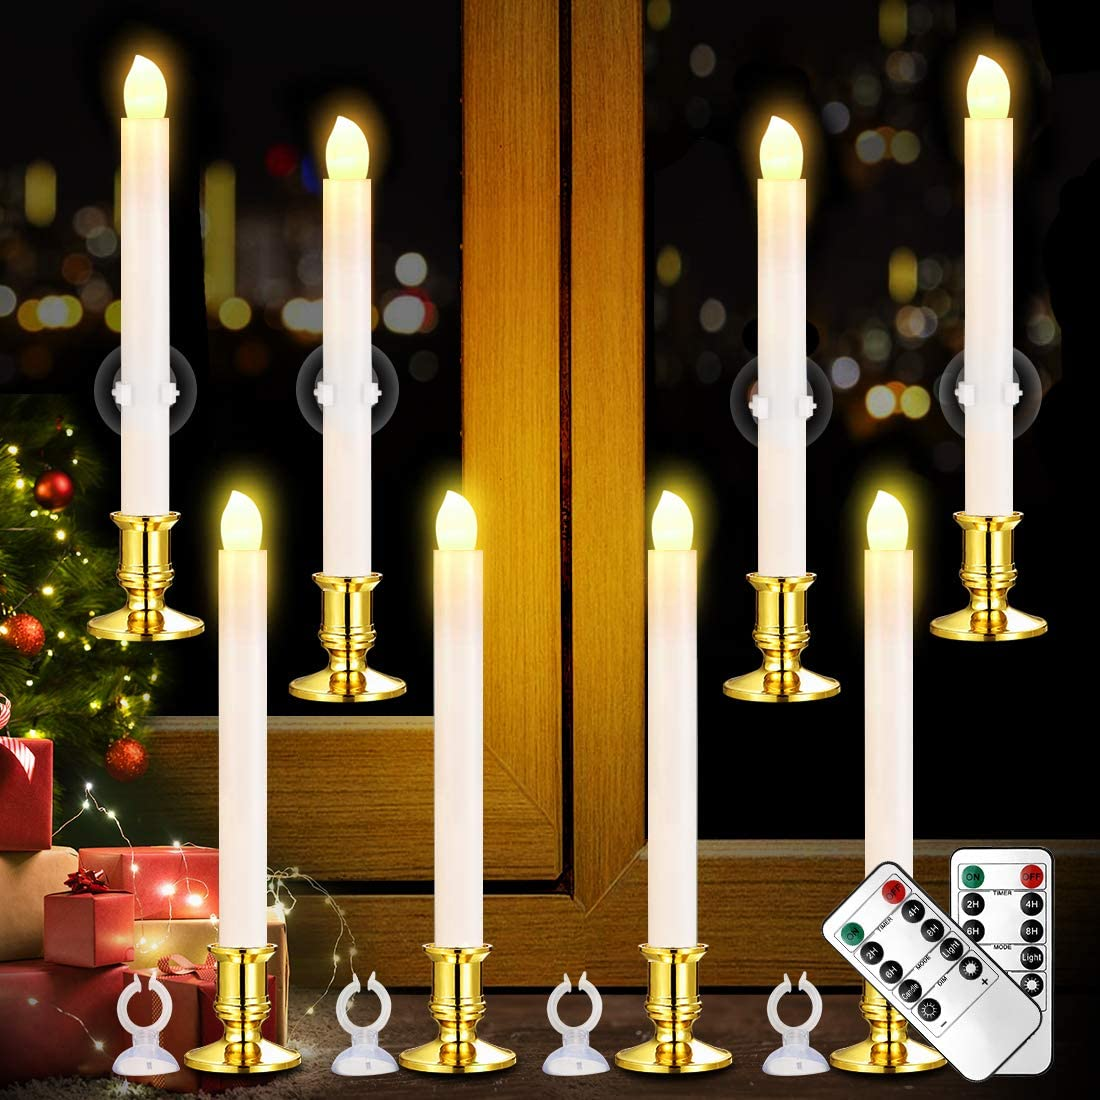 Candles Holders Christmas Window Candles Lights 8 Pack Battery Operated Flameless Taper Candles With Remote Control And Timer Removable Silver Holder Suction Cup For Seasonal Festival Celebration Warm White Home Musol Com Mx